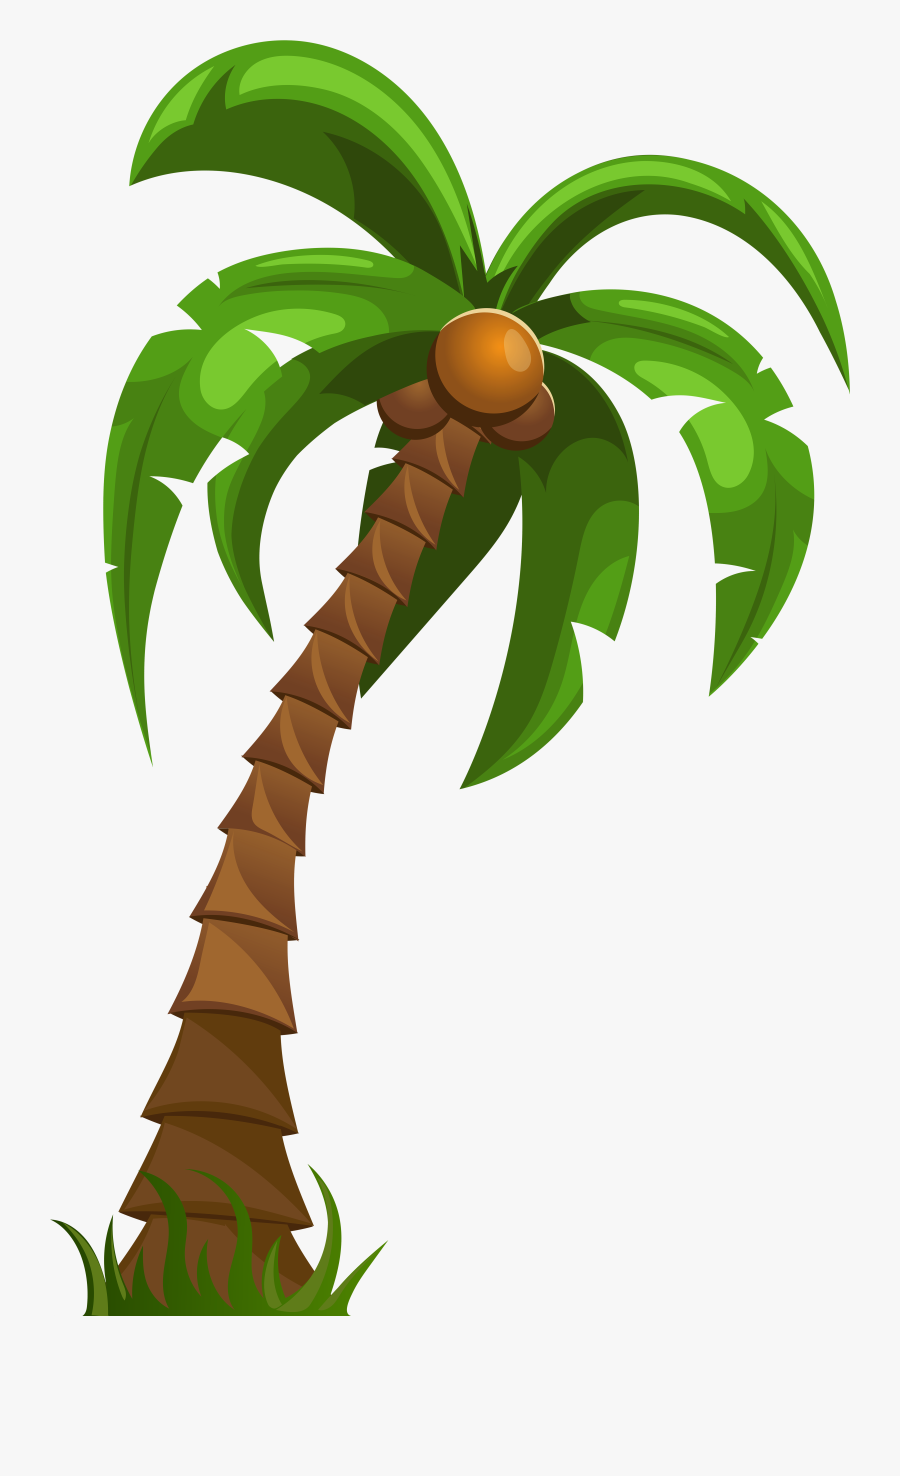 Png Clip Art Gallery - Cartoon Palm Tree Png, Transparent Clipart